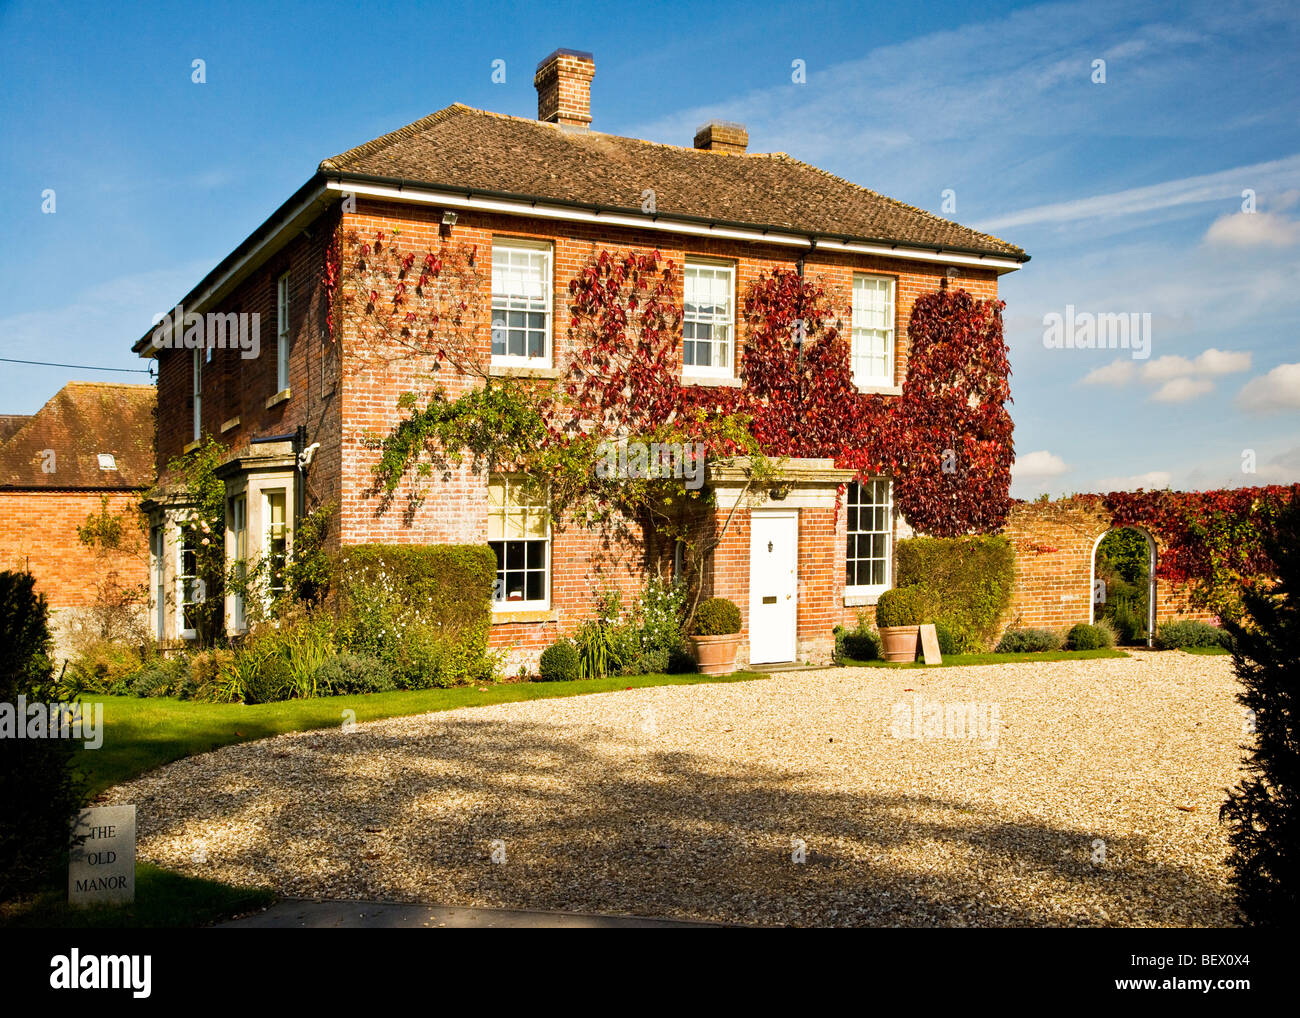 Typical English country manor house in Ogbourne St.Andrew a village in Wiltshire, England, UK - Stock Image